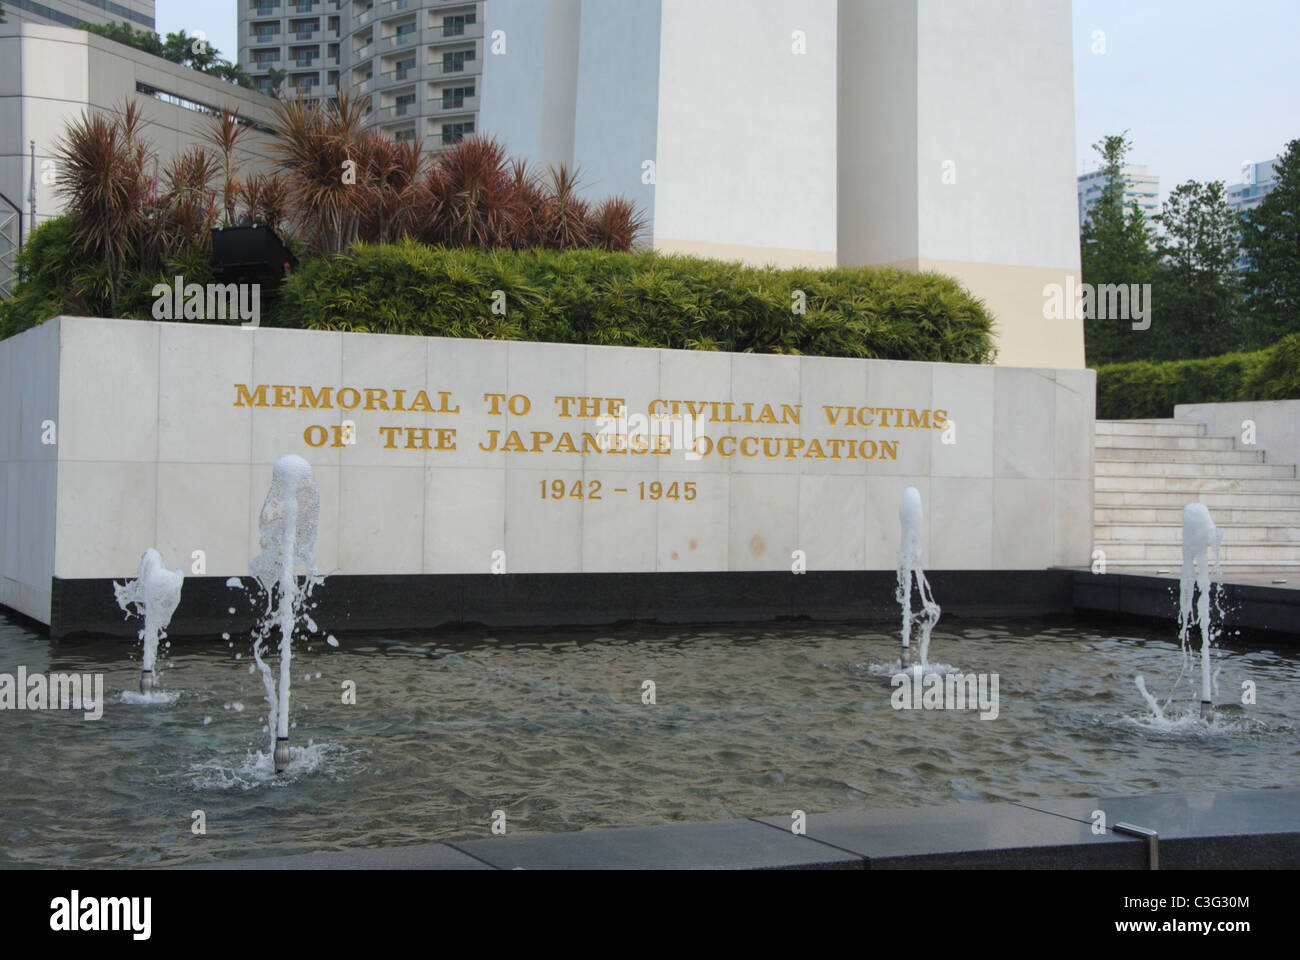 Memorial to the civilian victims of the Japanese occupation 1942-1945 - Stock Image